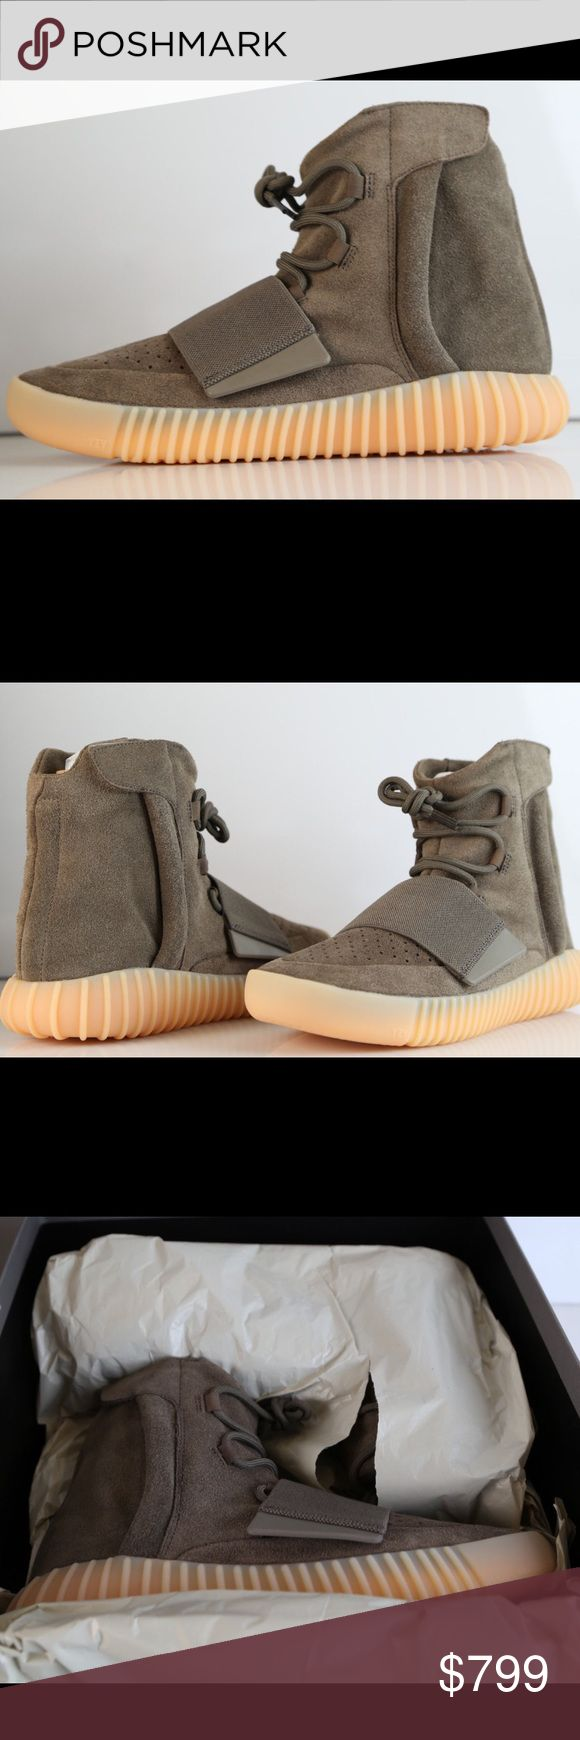 Adidas X Kanye West Yeezy Boost 750 Light Brown didas X Kanye West Yeezy Boost 750 Light Brown Chocolate Gum BY2456 Brand New Never Worn 100% Authentic adidas Shoes Athletic Shoes